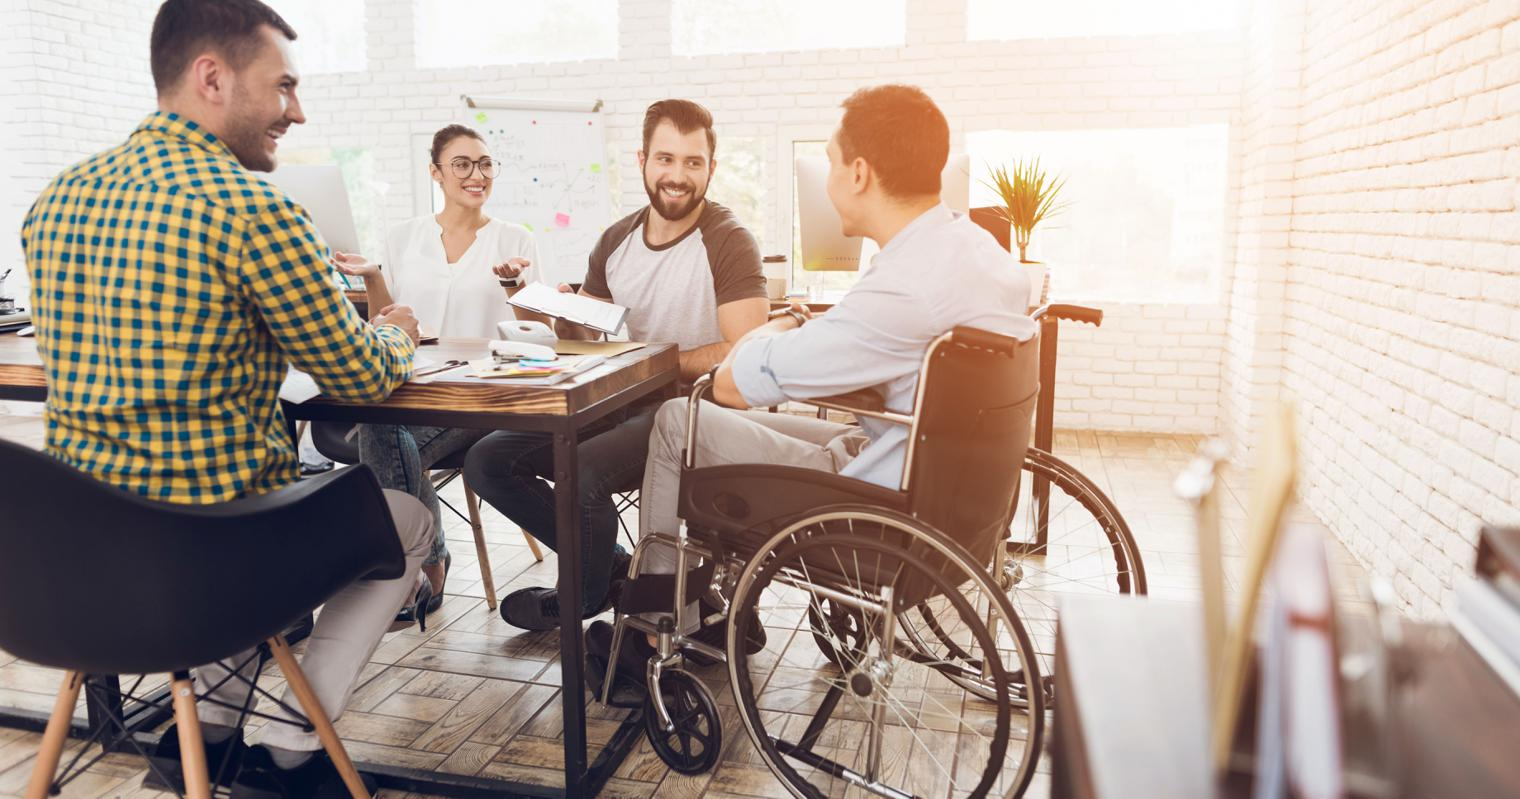 How To Ensure Your Hiring Process Is Accessible For Candidates With Disabilities